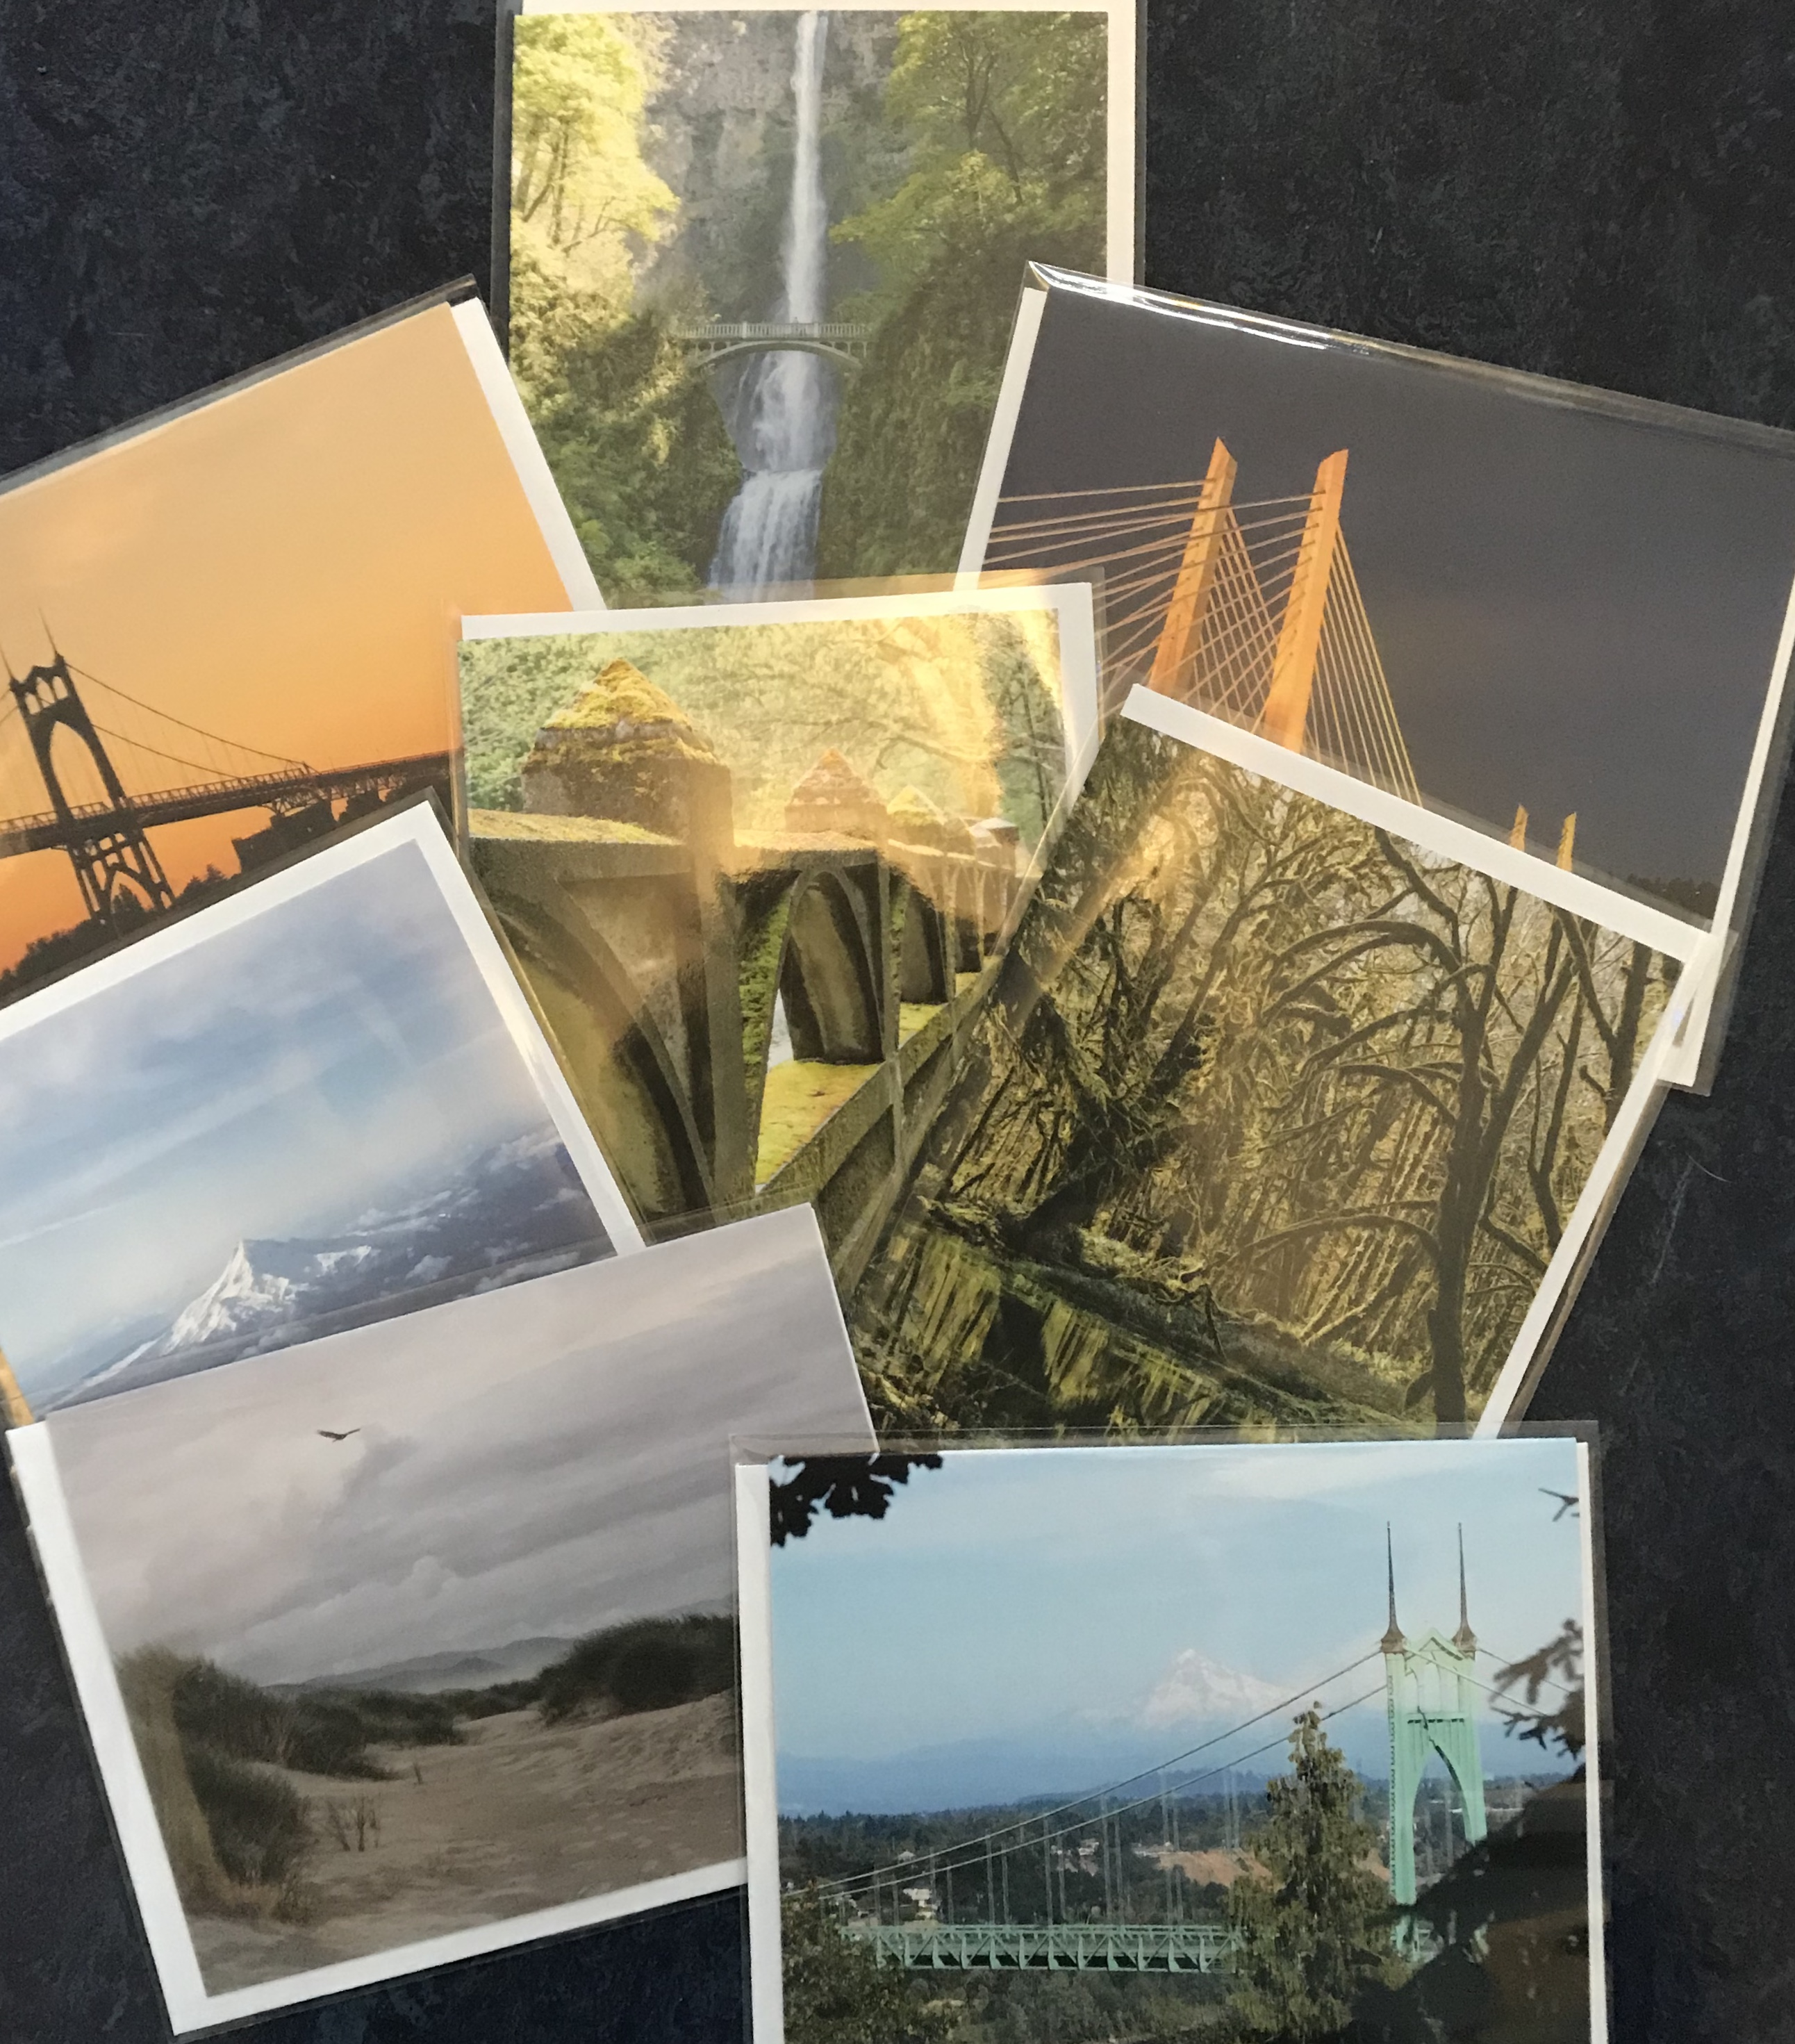 Collection of photographs of Portland bridges and locations.